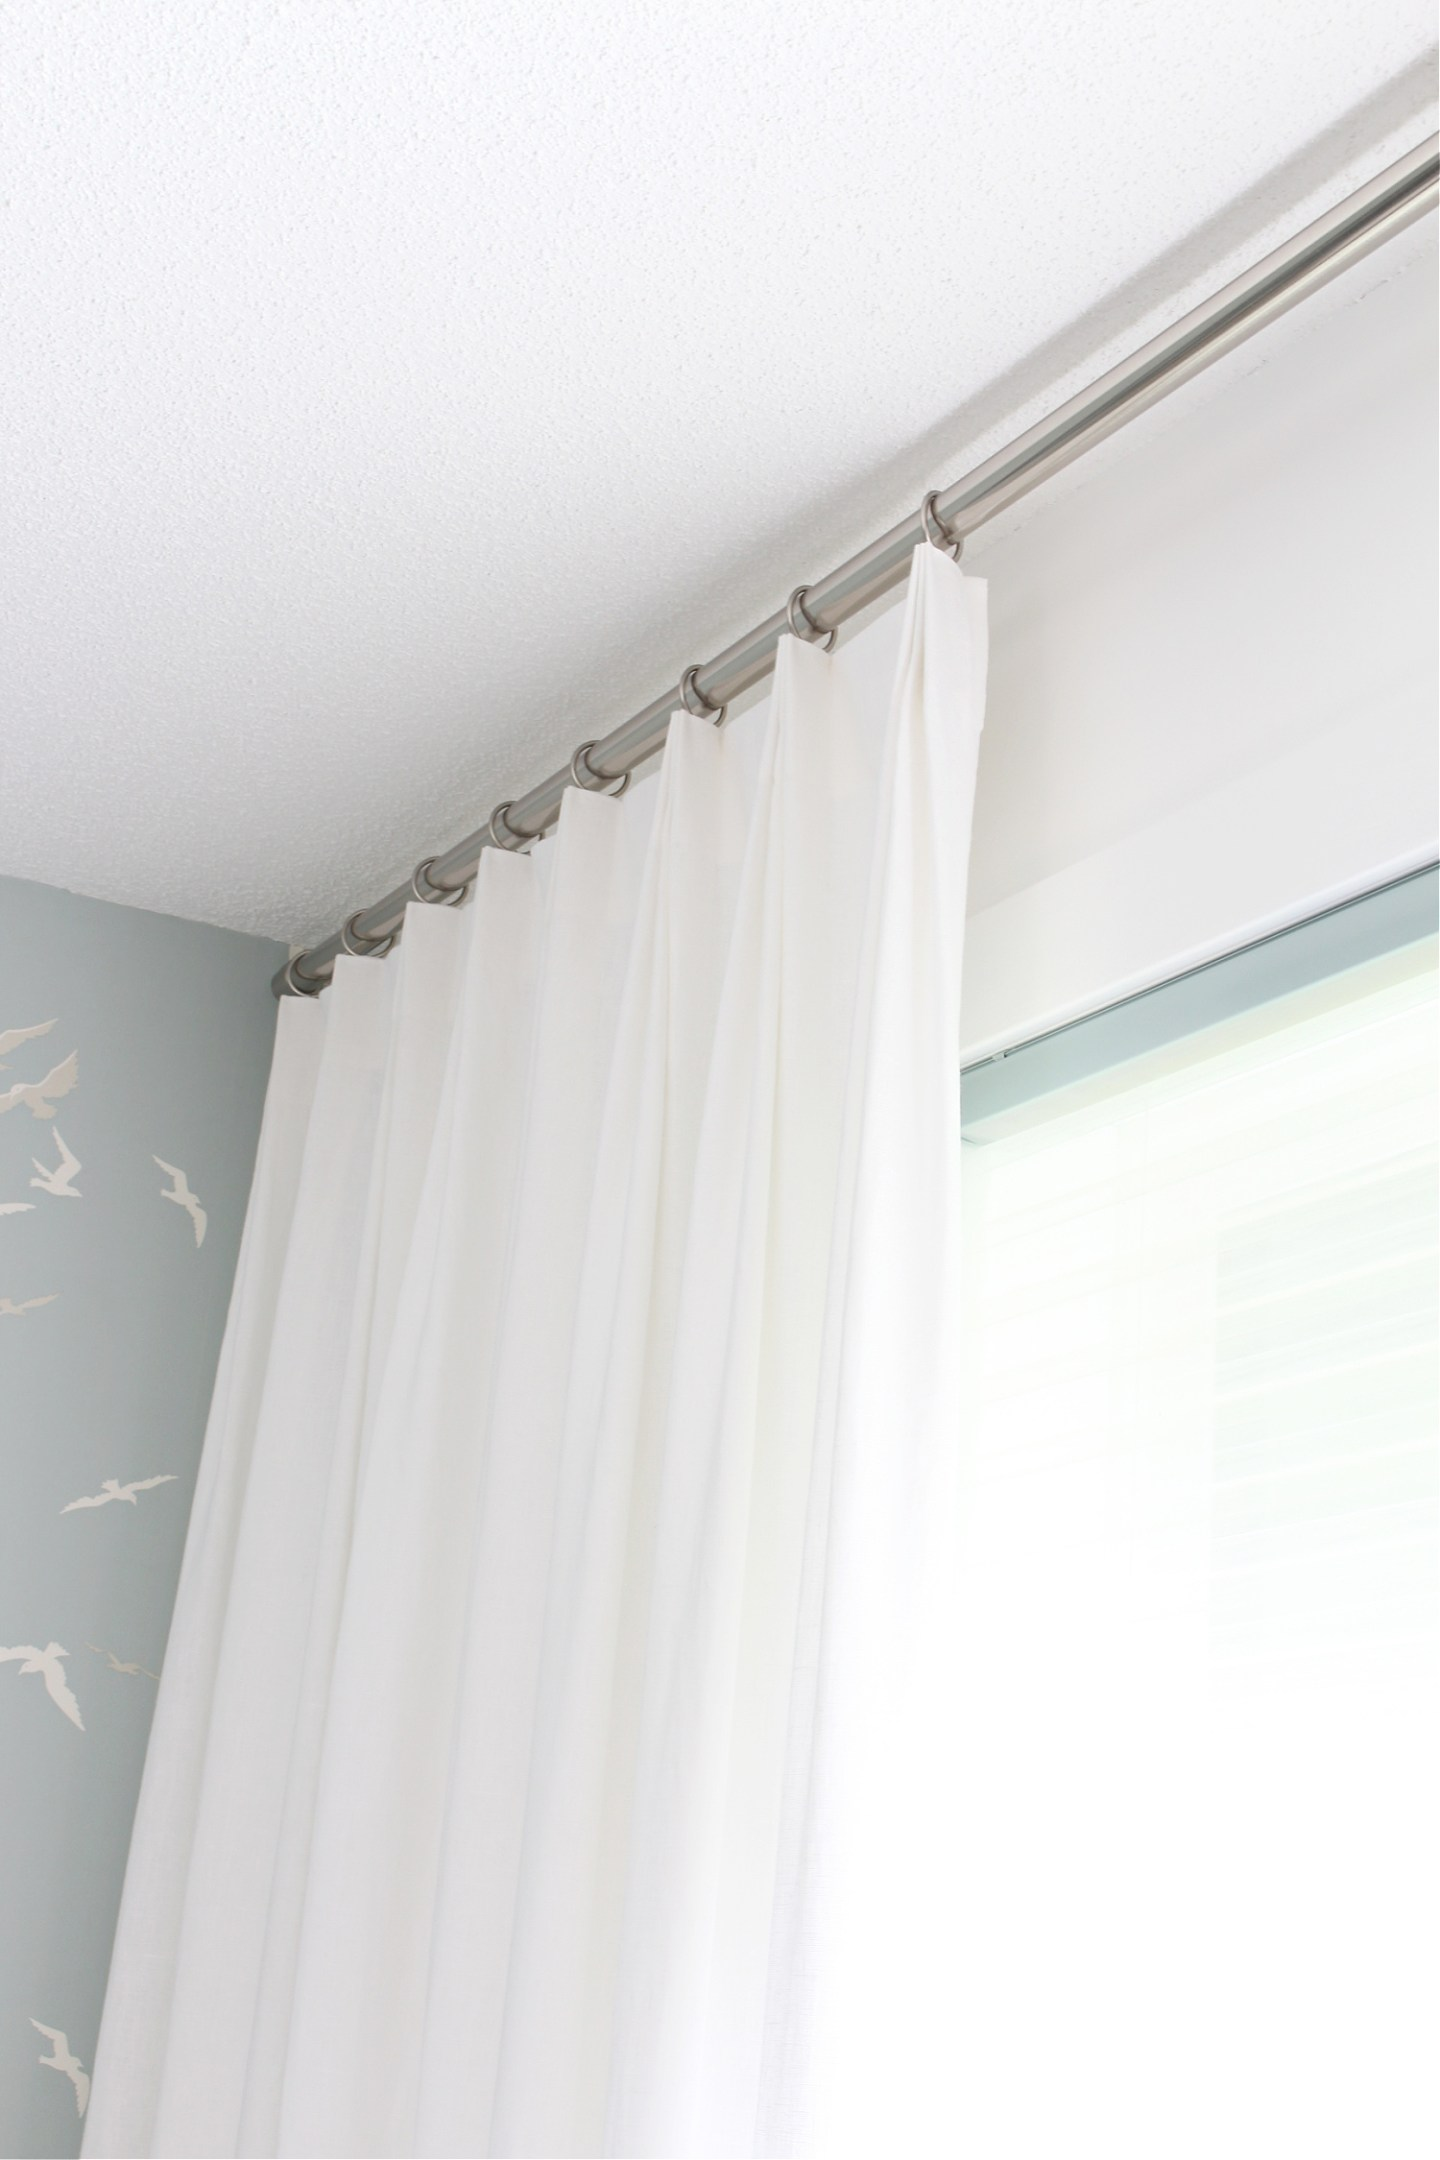 How Do You Sew Euro Pleat Curtains?